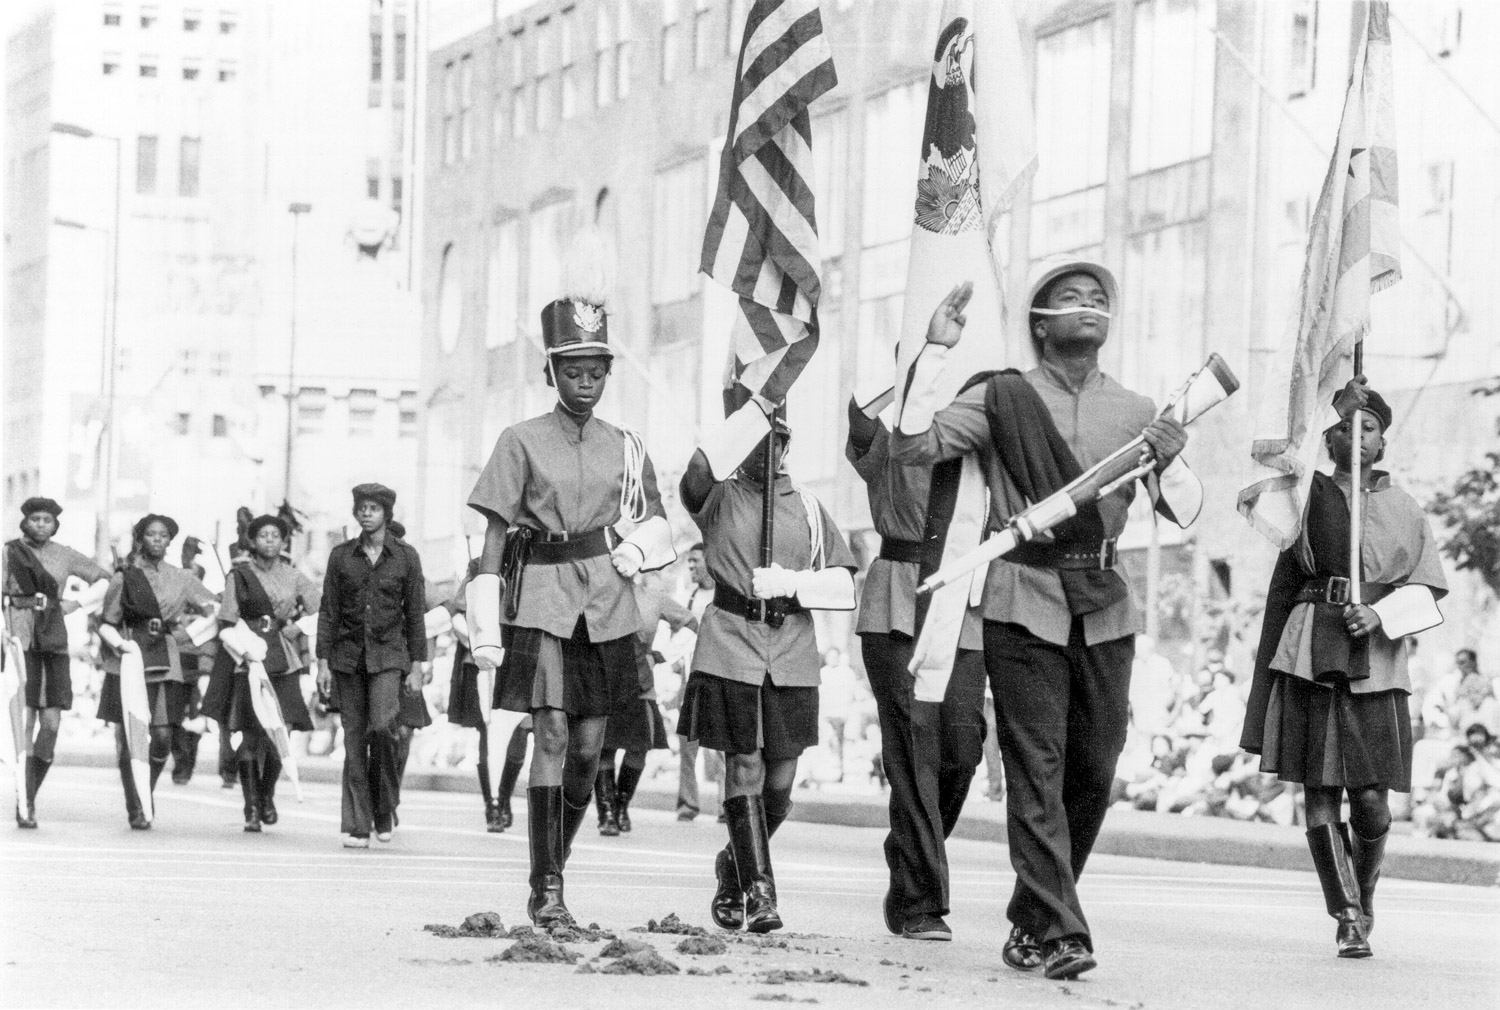 Horan-06-marchingband_6000px_BW.jpg